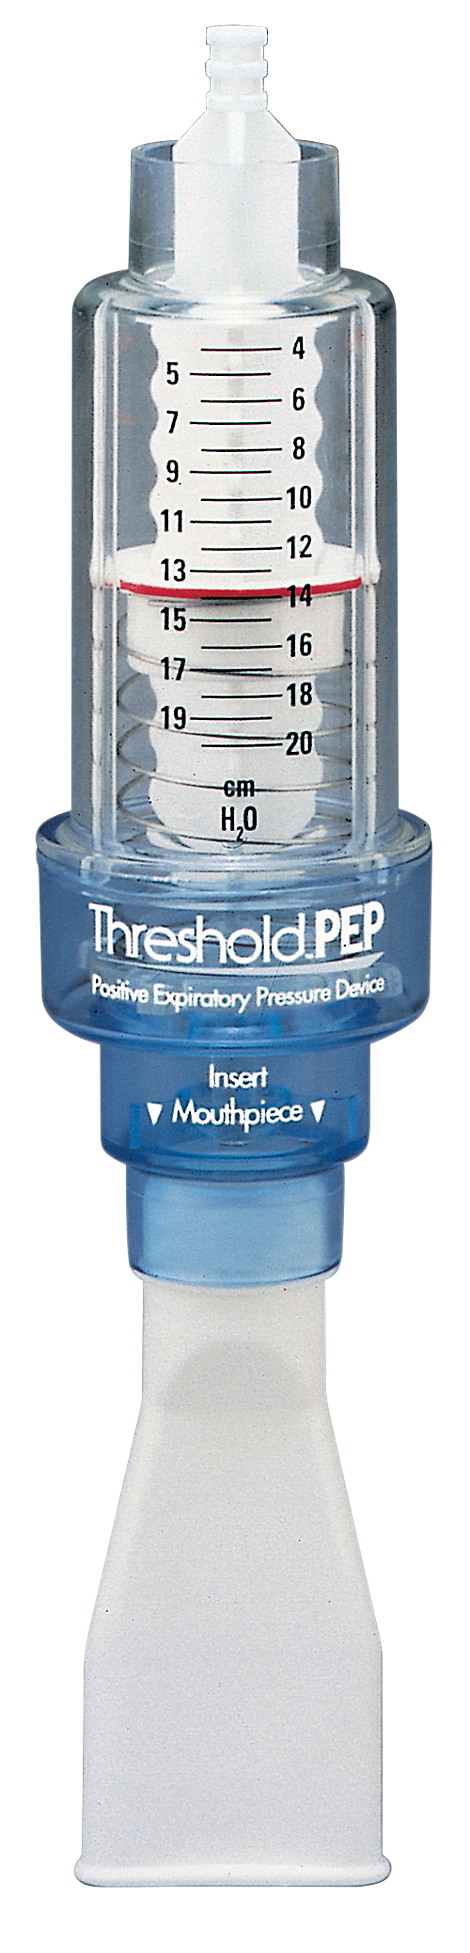 https://www.usa.philips.com/healthcare/product/HCHS735010/treshold-positive-expiratory-pressure-device